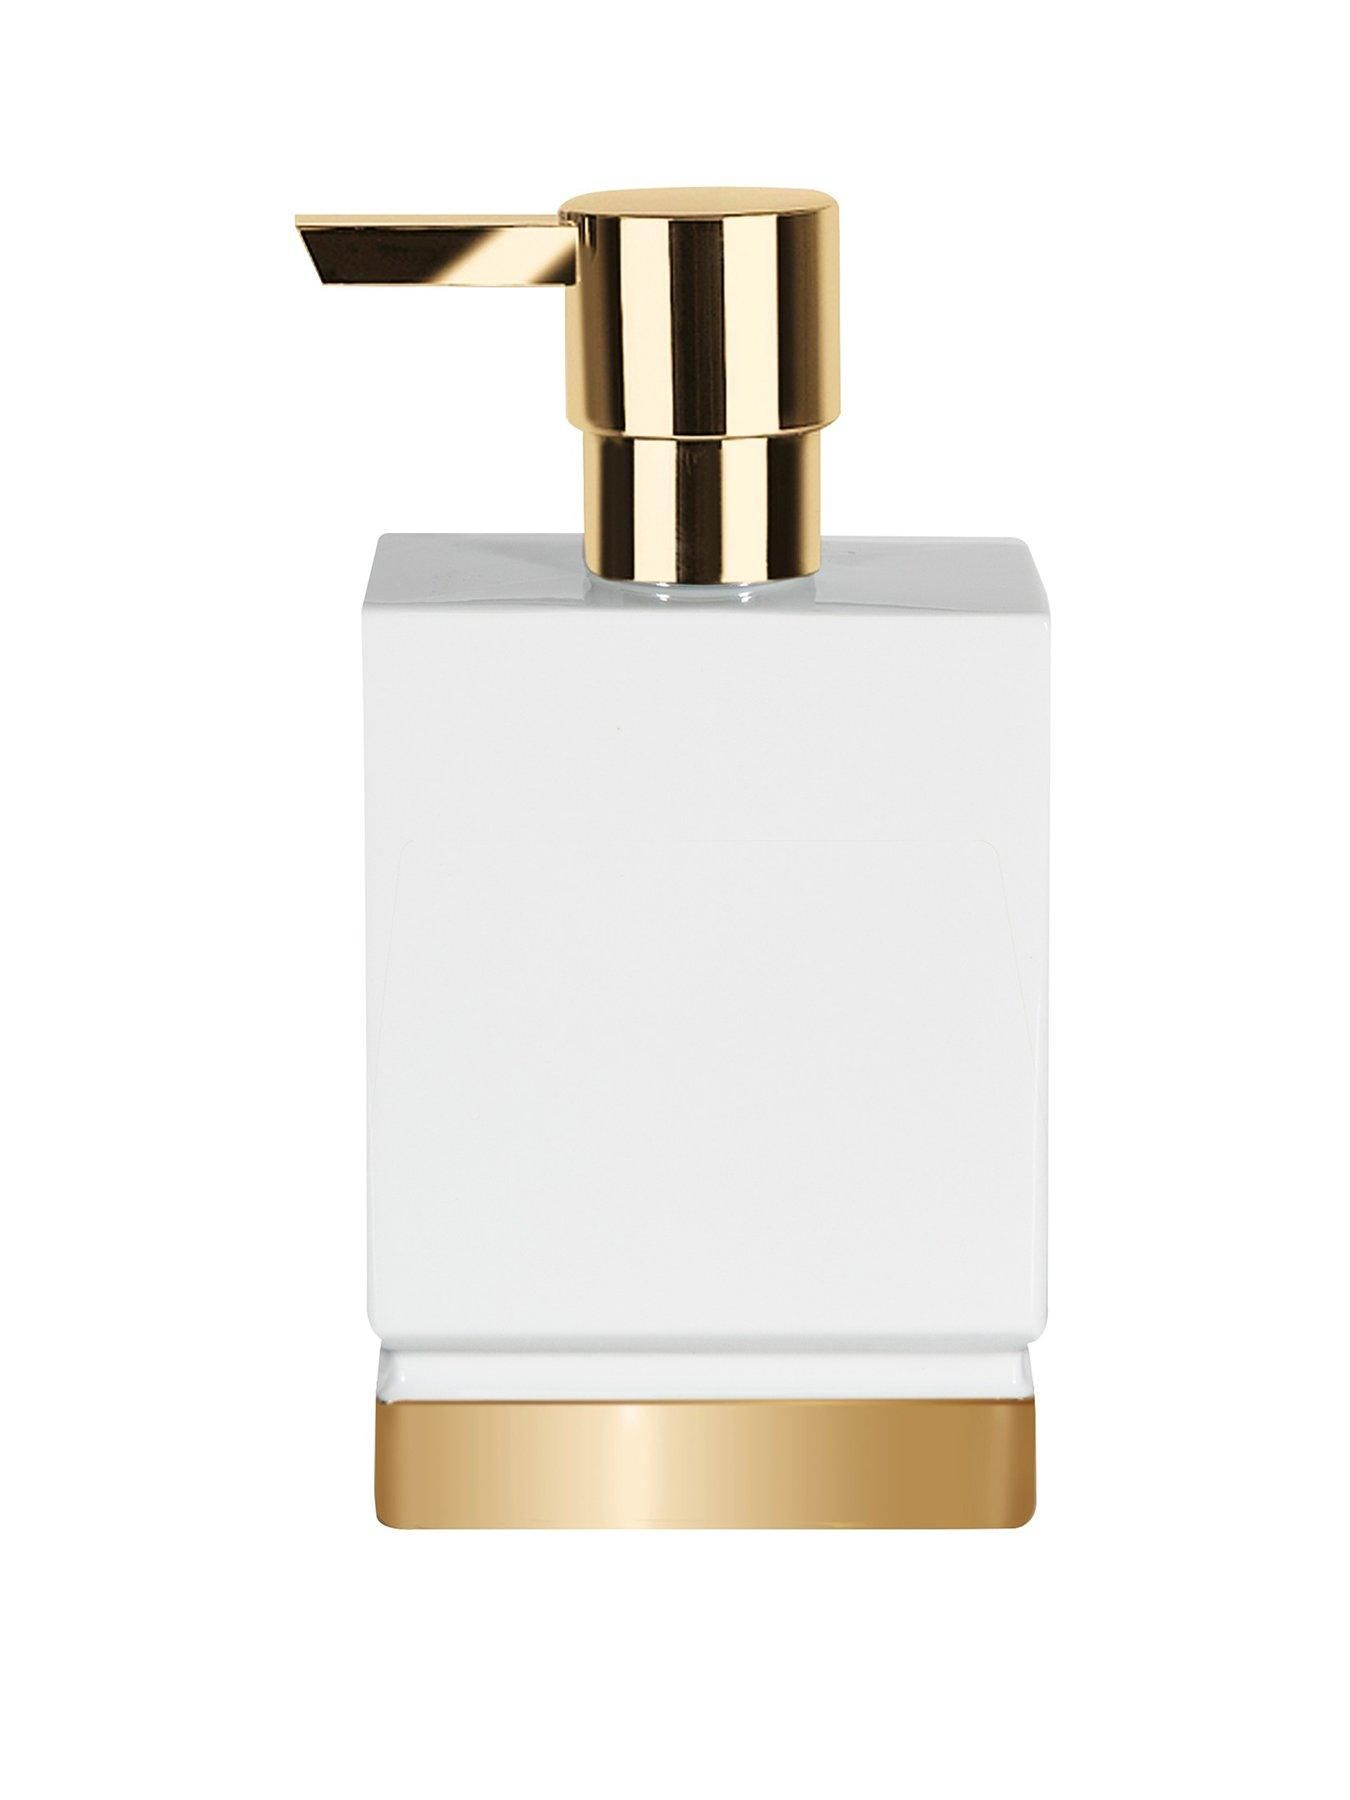 Roma Soap Dispenser in White and Gold | Bath, Bath accessories and ...